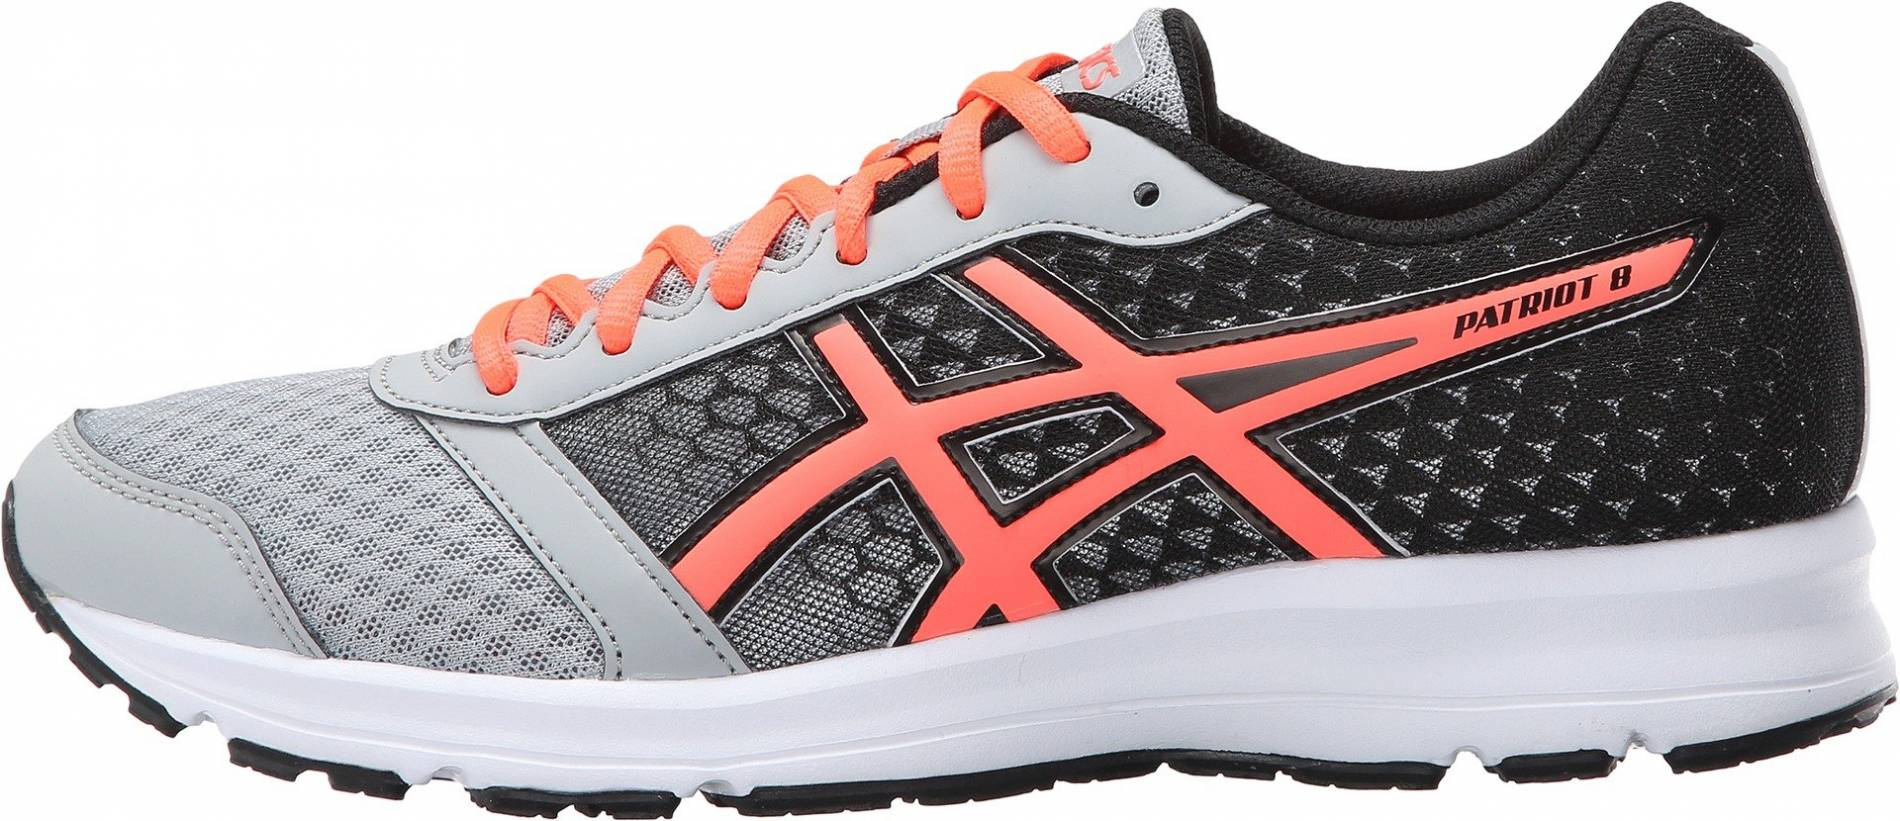 Only $36 + Review of Asics Patriot 8